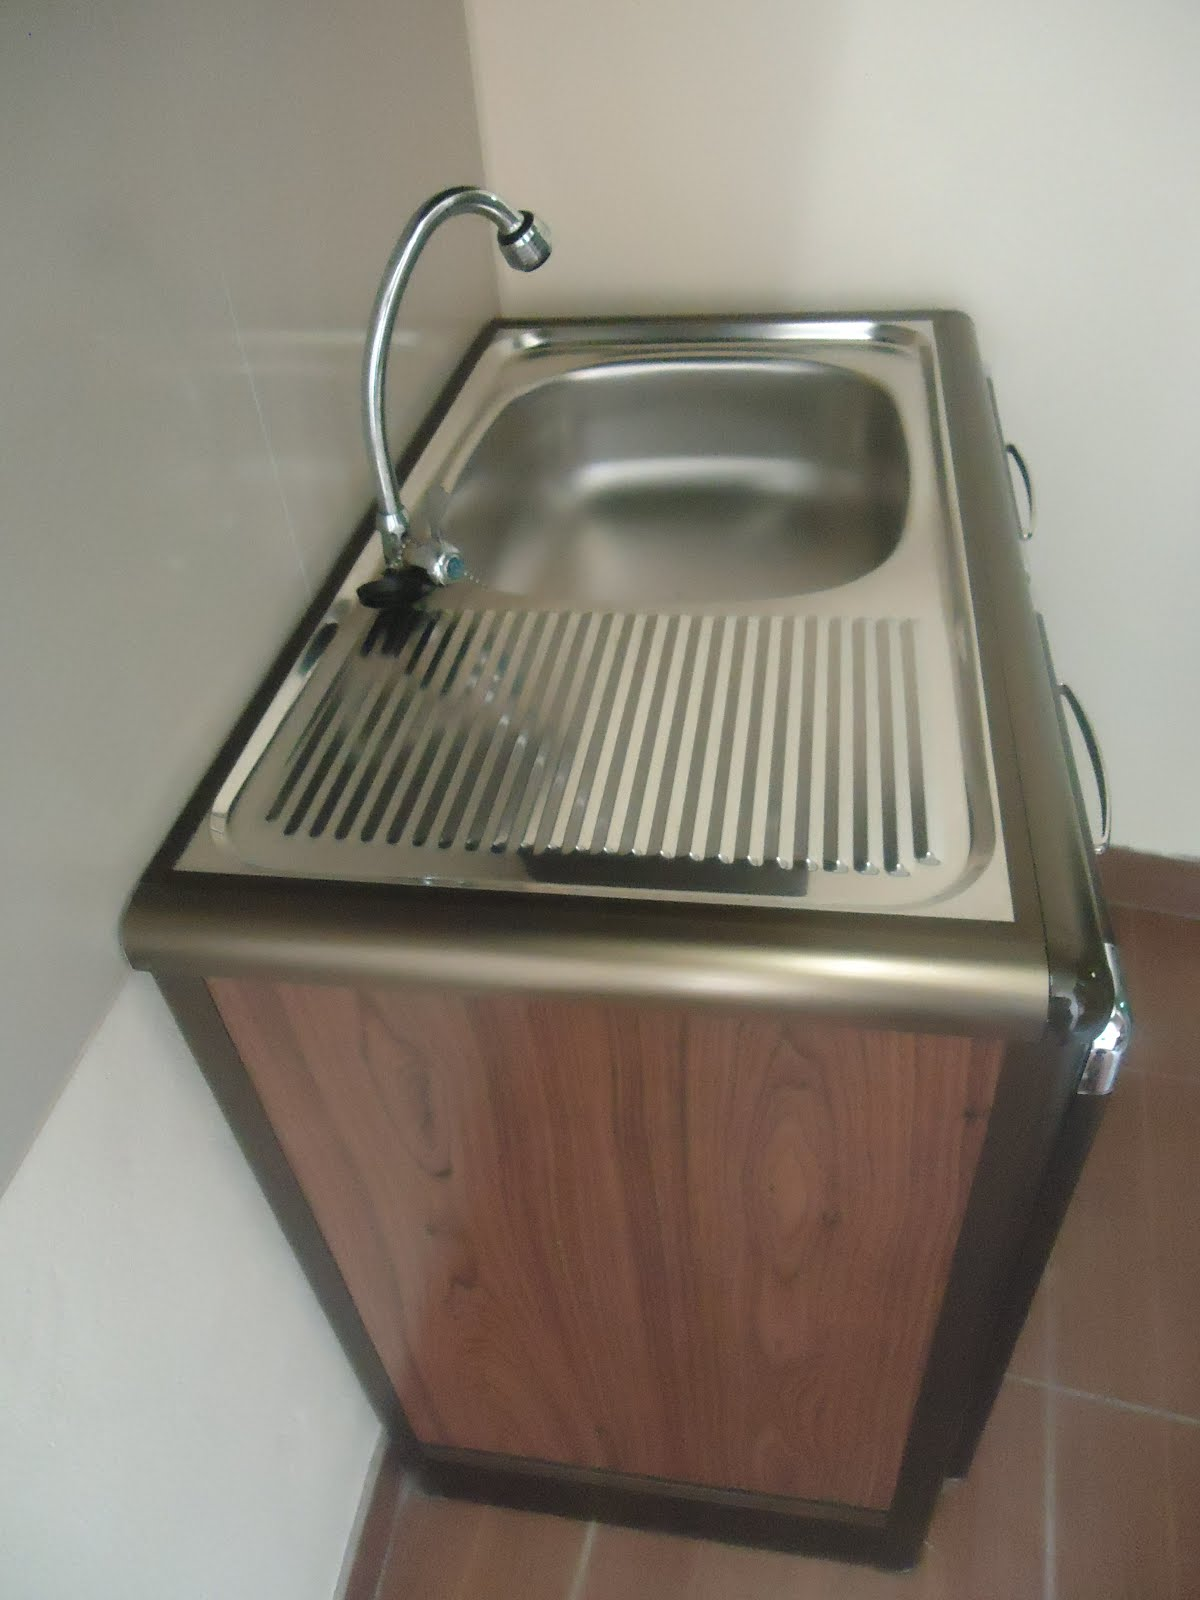 Portable Kitchen Sink : Home Sweet Home: Portable Kitchen Sink